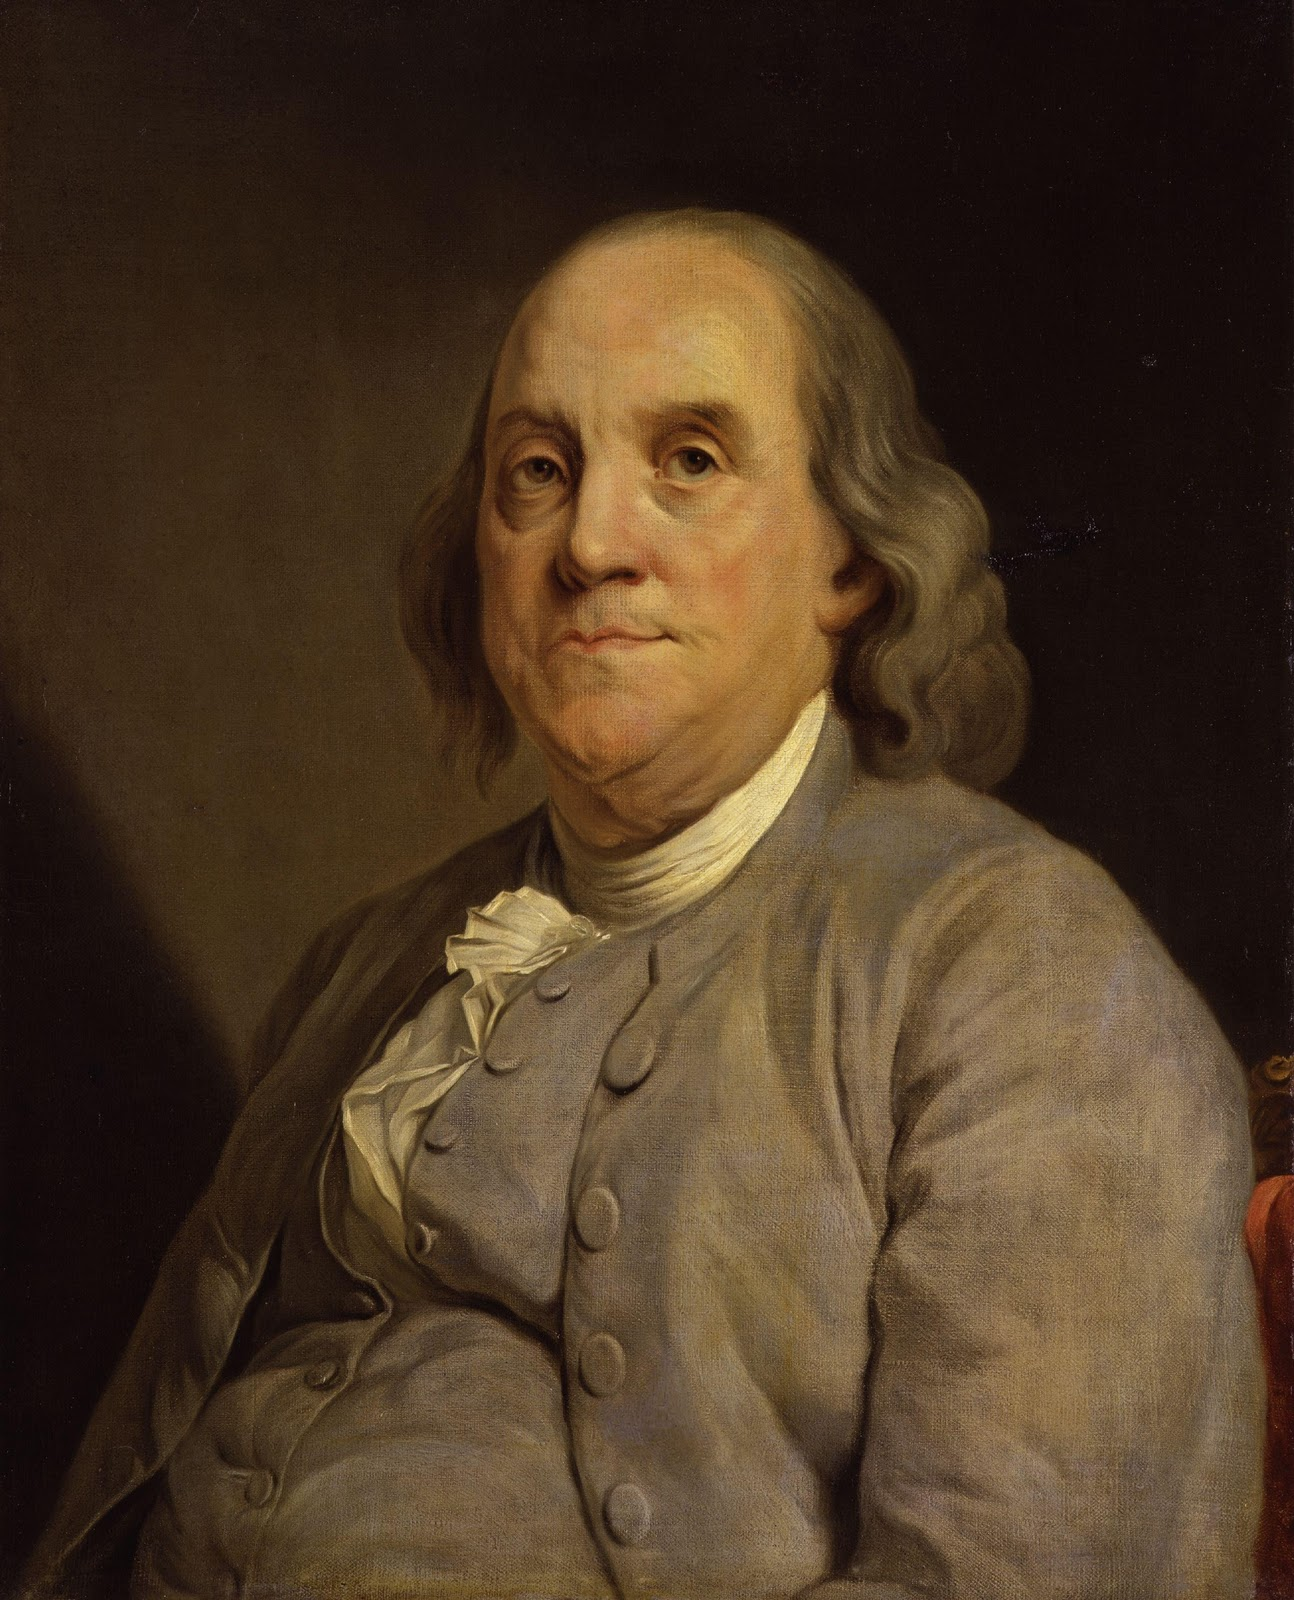 ben franklins contributions to america I asked my father recently if he'd ever read franklin's  allowed that franklin's contributions to  as jeffrey louis decker notes in made in america,.